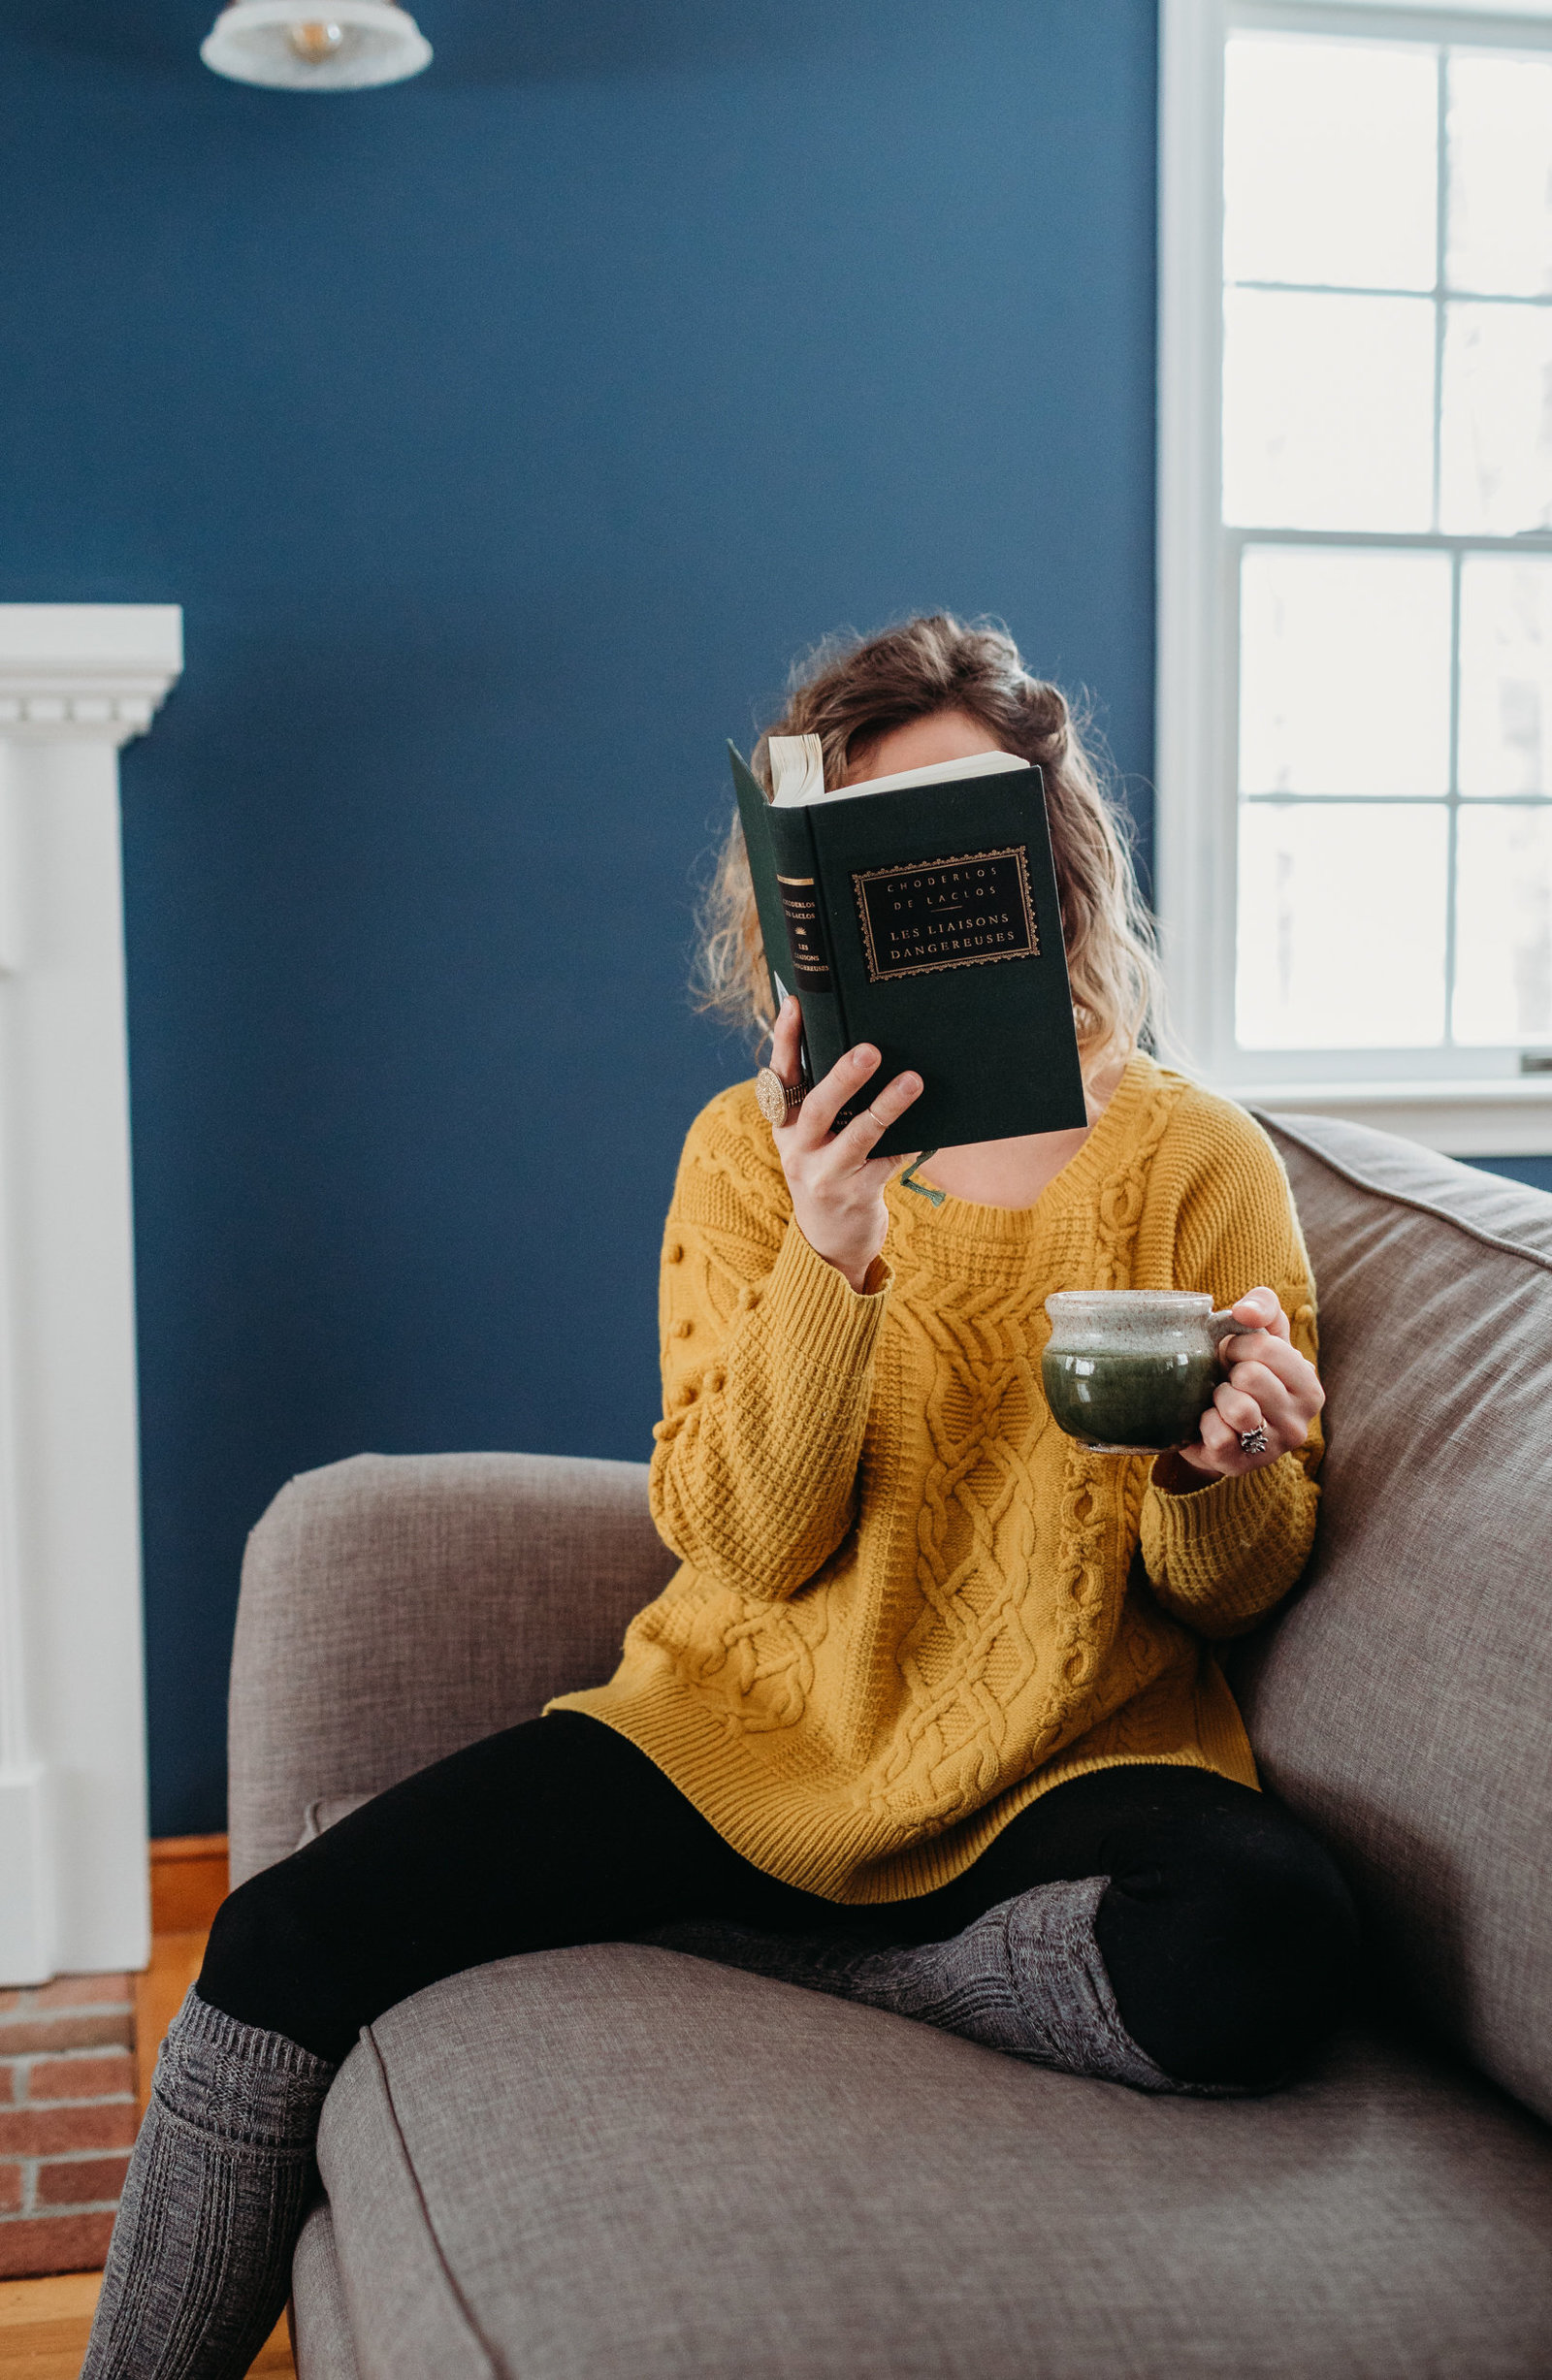 woman sits on a couch in a blue room with book and coffee mug